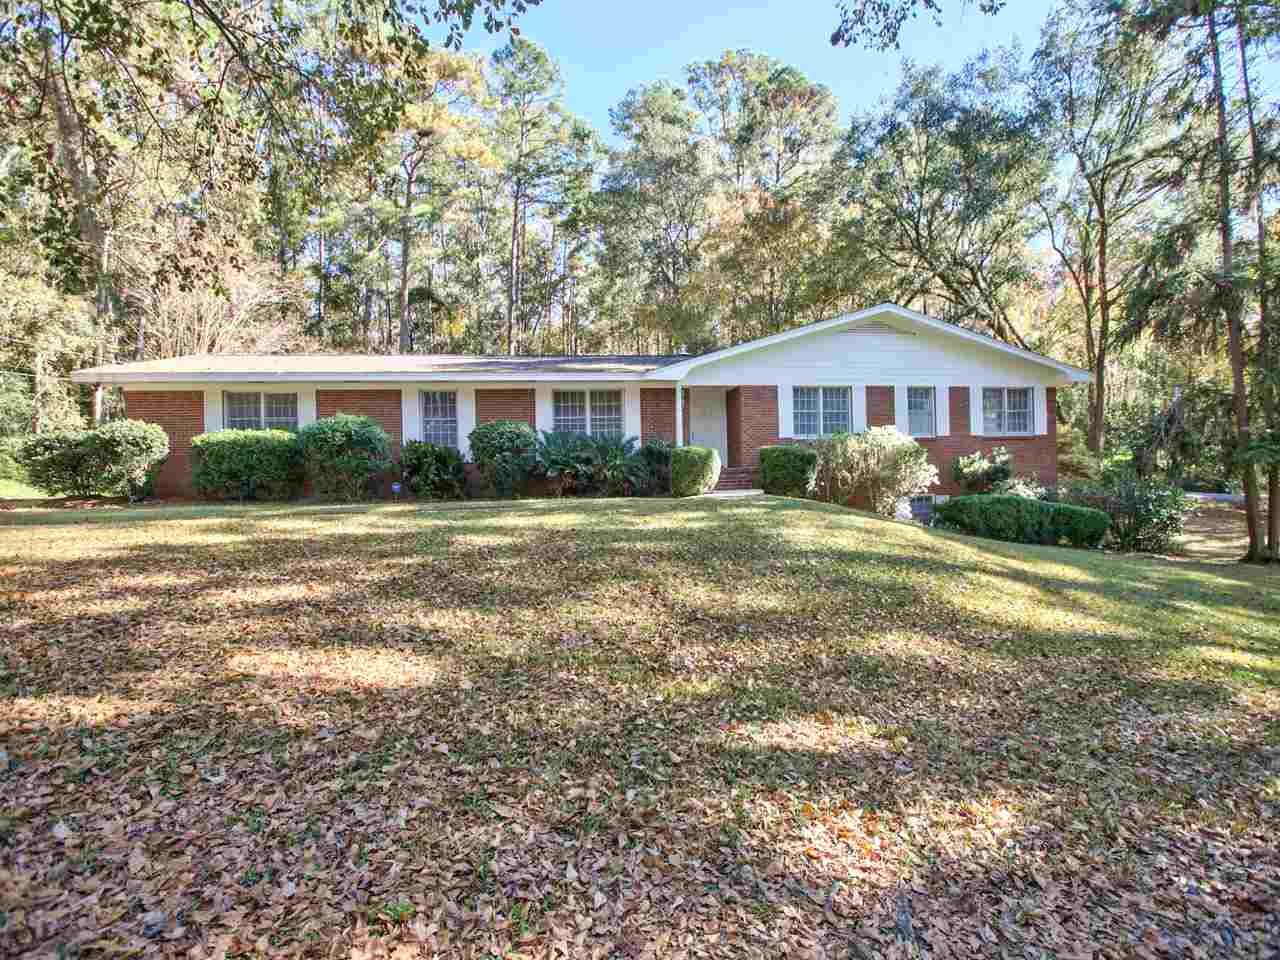 Photo for 3105 LAKESHORE Drive, TALLAHASSEE, FL 32312 (MLS # 313372)